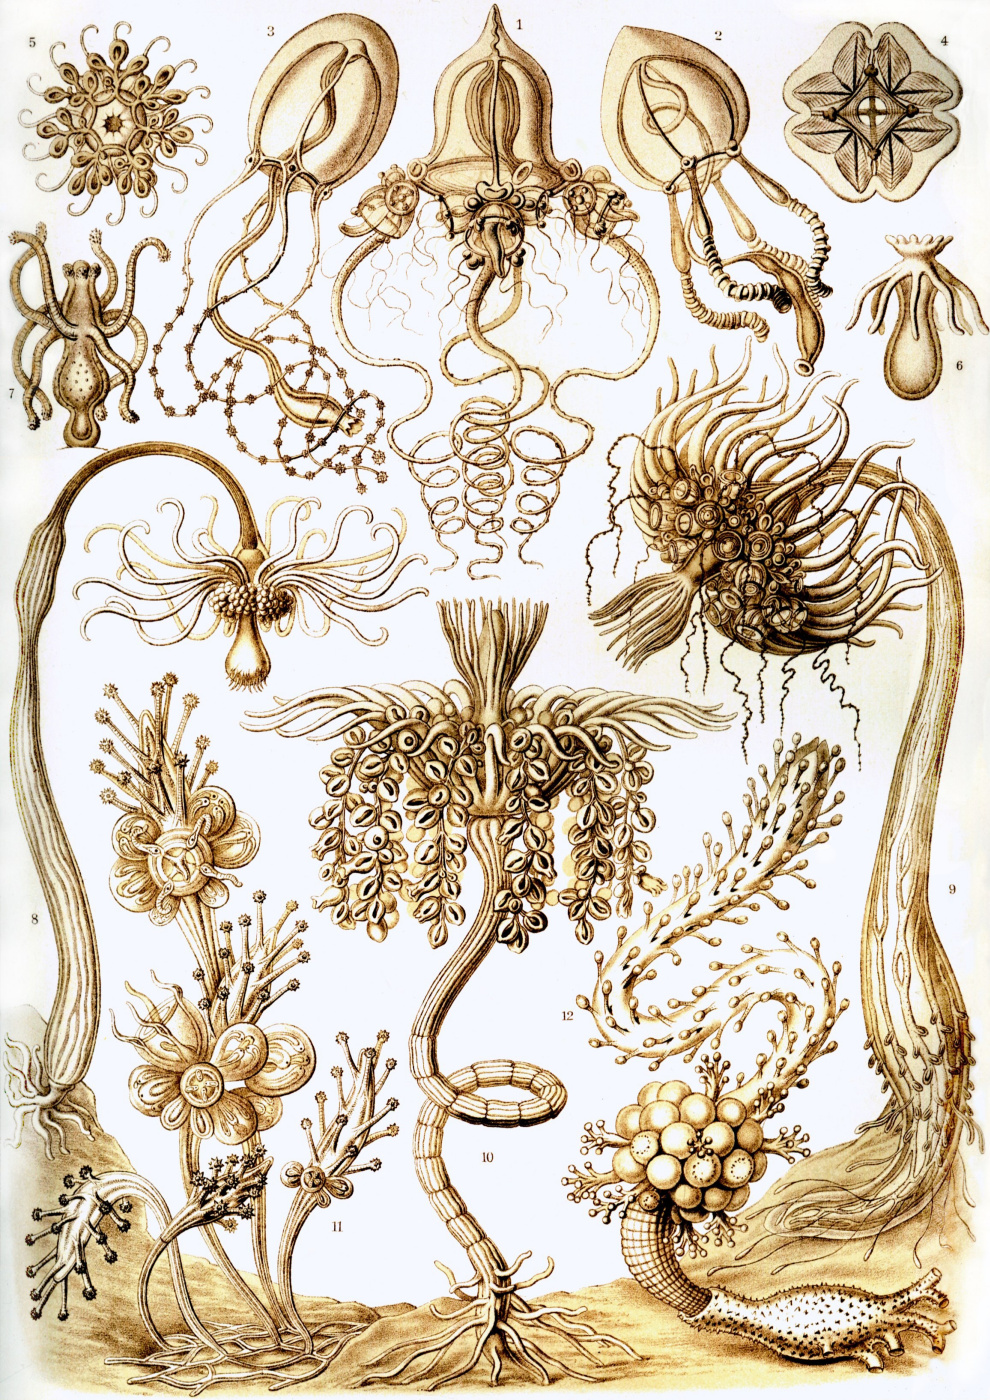 """Ernst Heinrich Haeckel. Antomedusa, tubularia. """"The beauty of form in nature"""""""